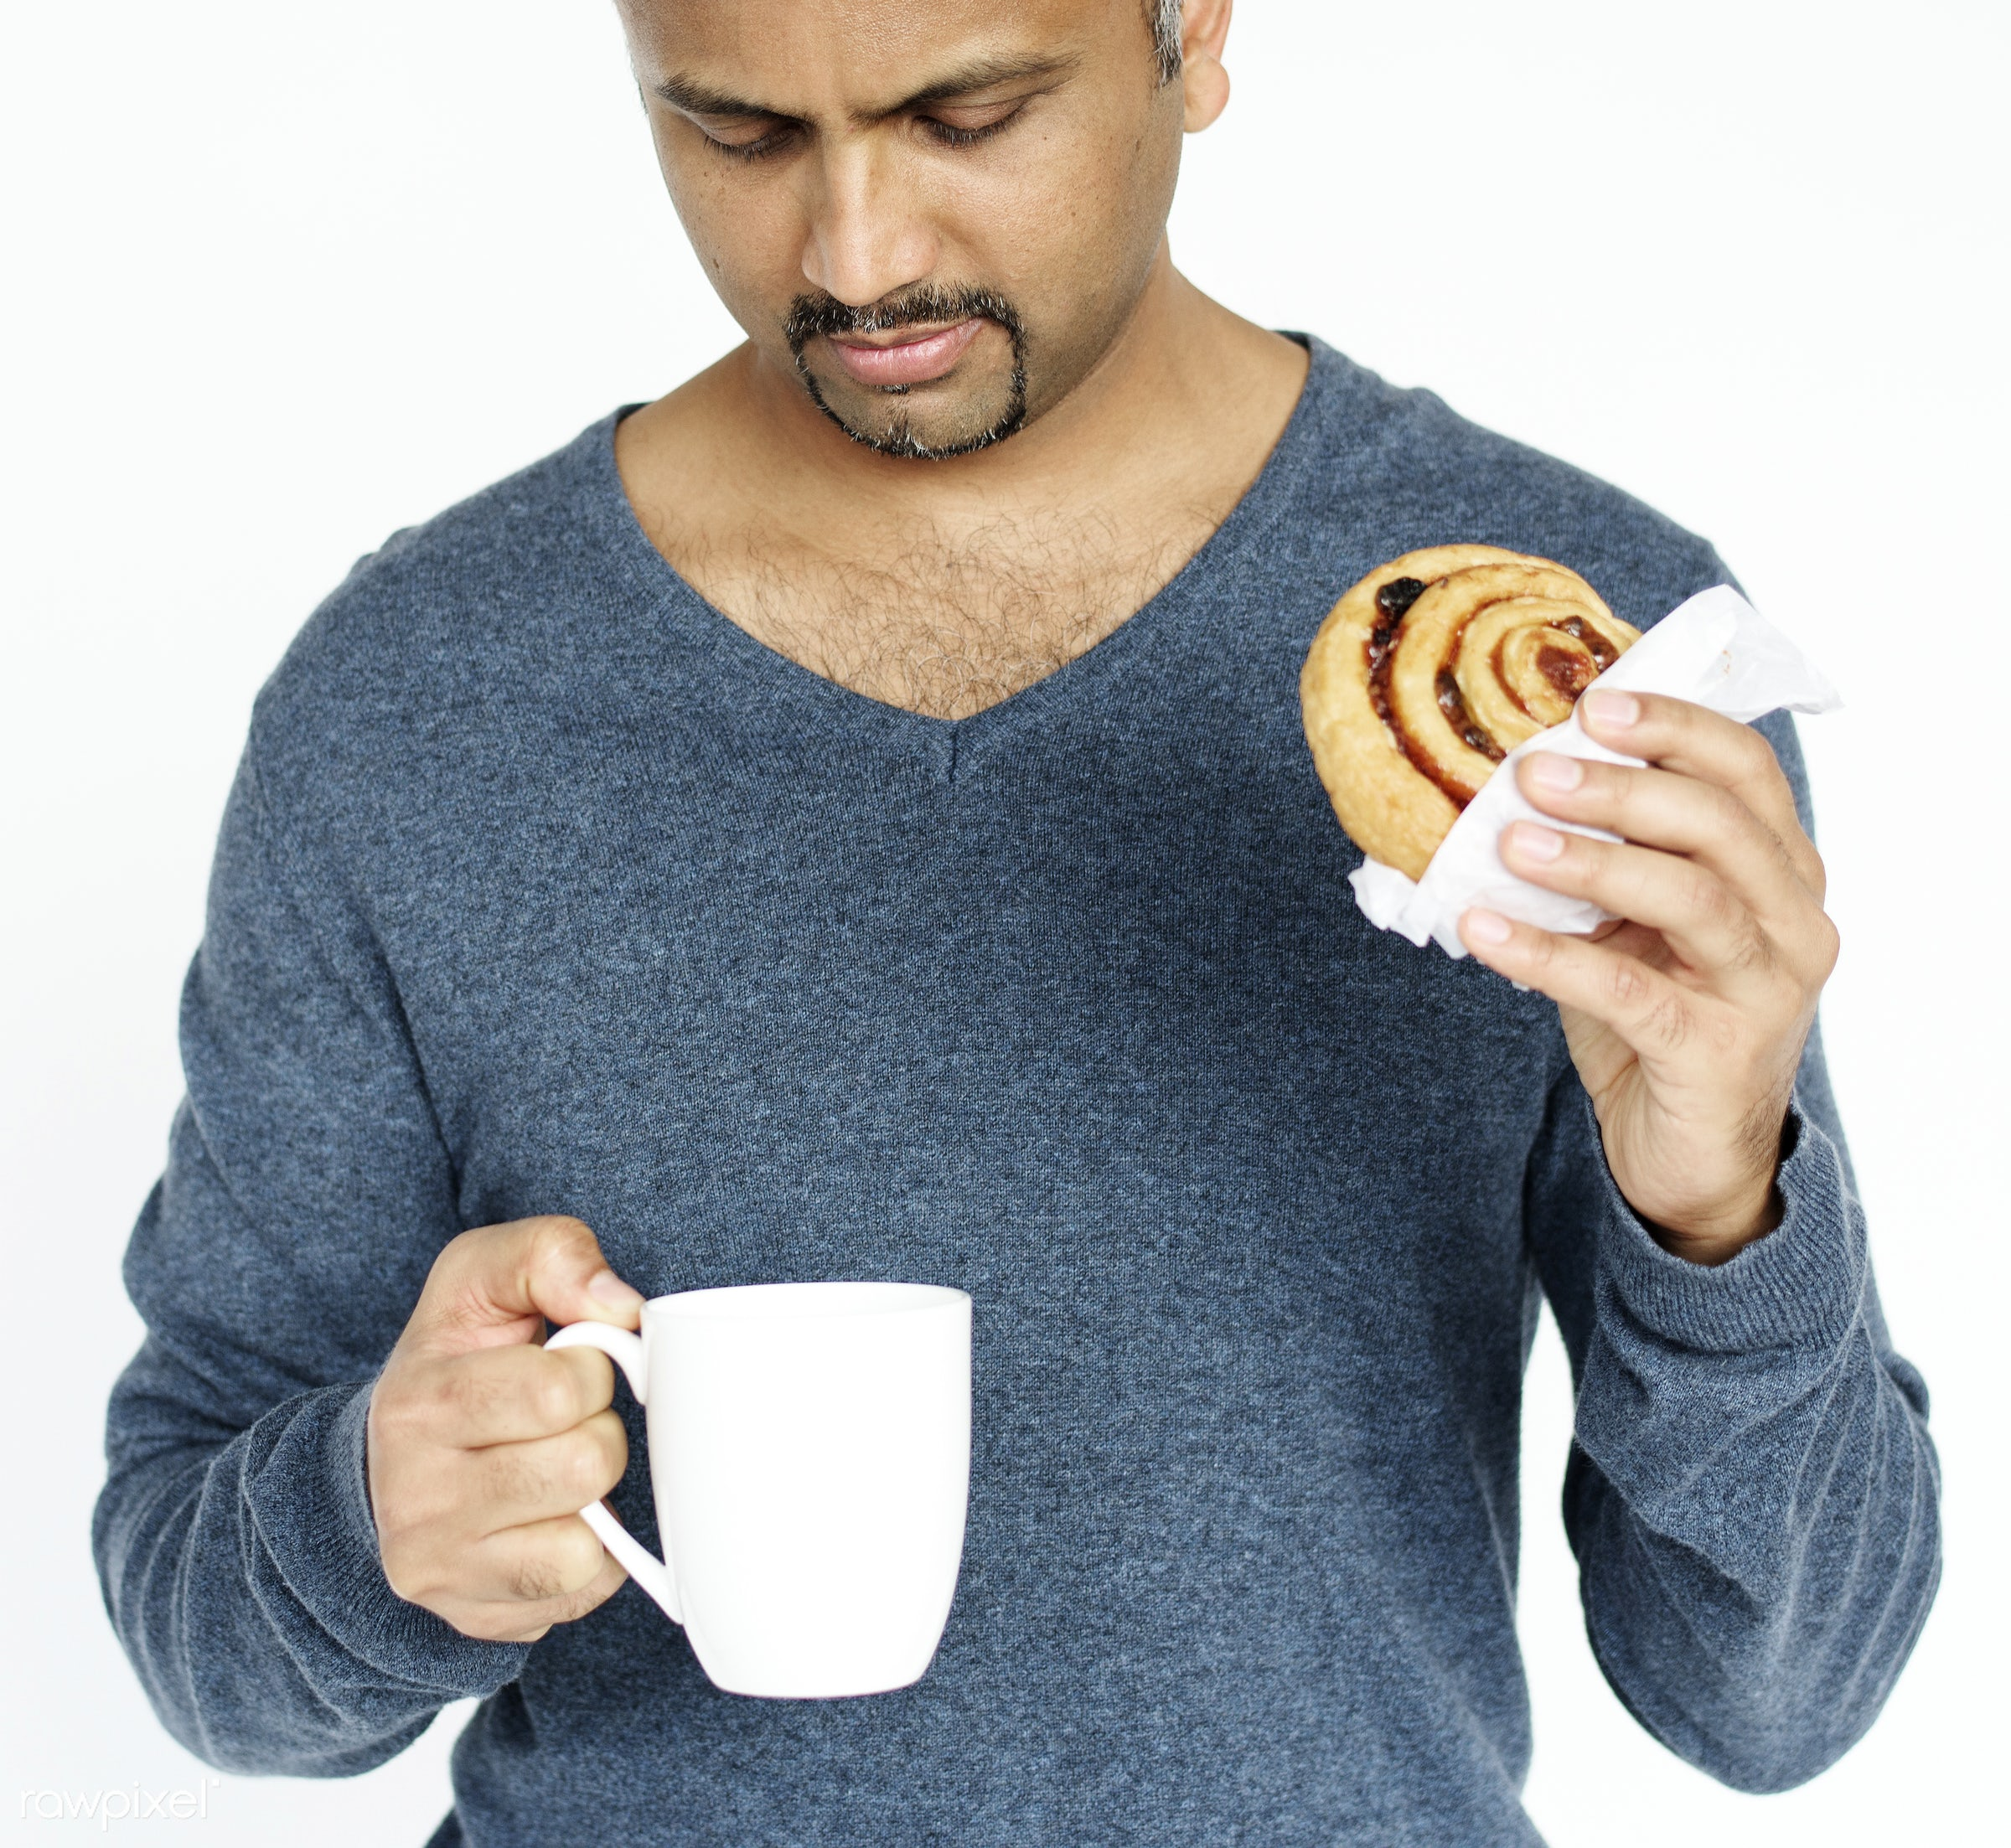 studio, cup, expression, person, holding, tea, people, race, mug, break, roll, bread, lifestyle, drink, gentleman, isolated...